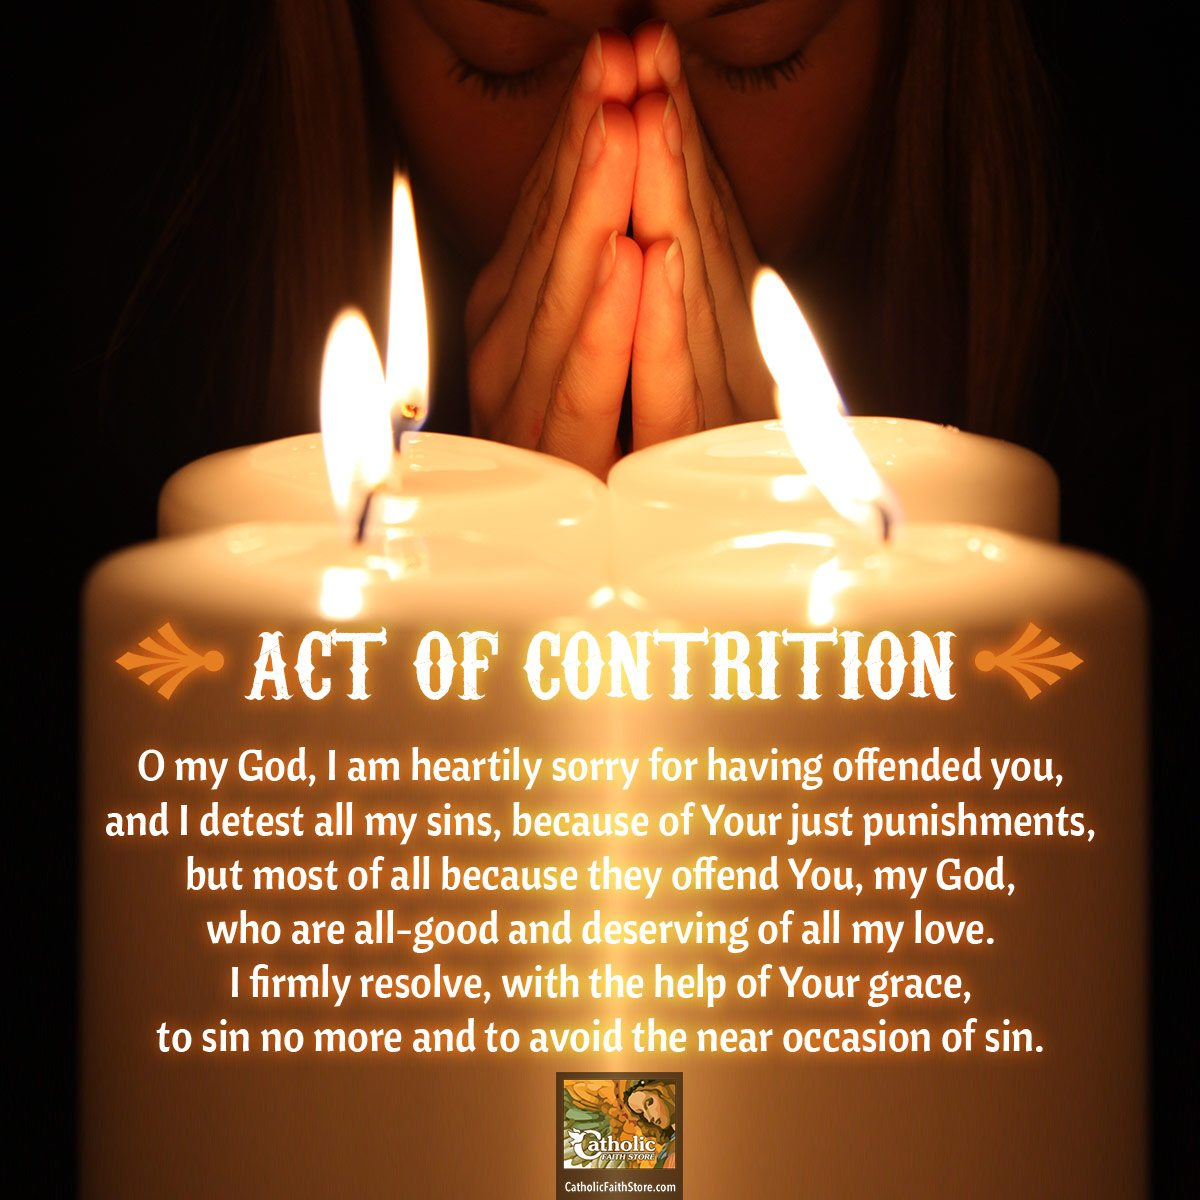 Admitting We Messed Up — The Act of Contrition